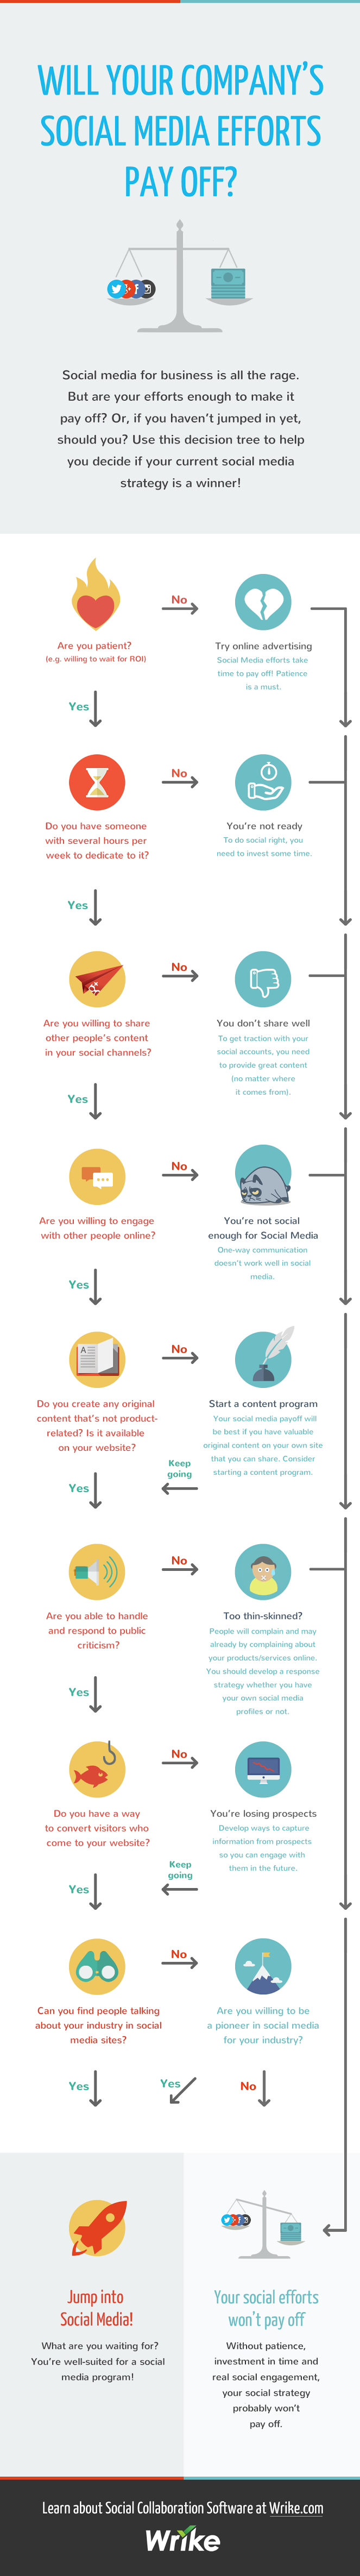 Social Media Marketing For Small Business and Organizations - Decision Tree - #infographic #startups